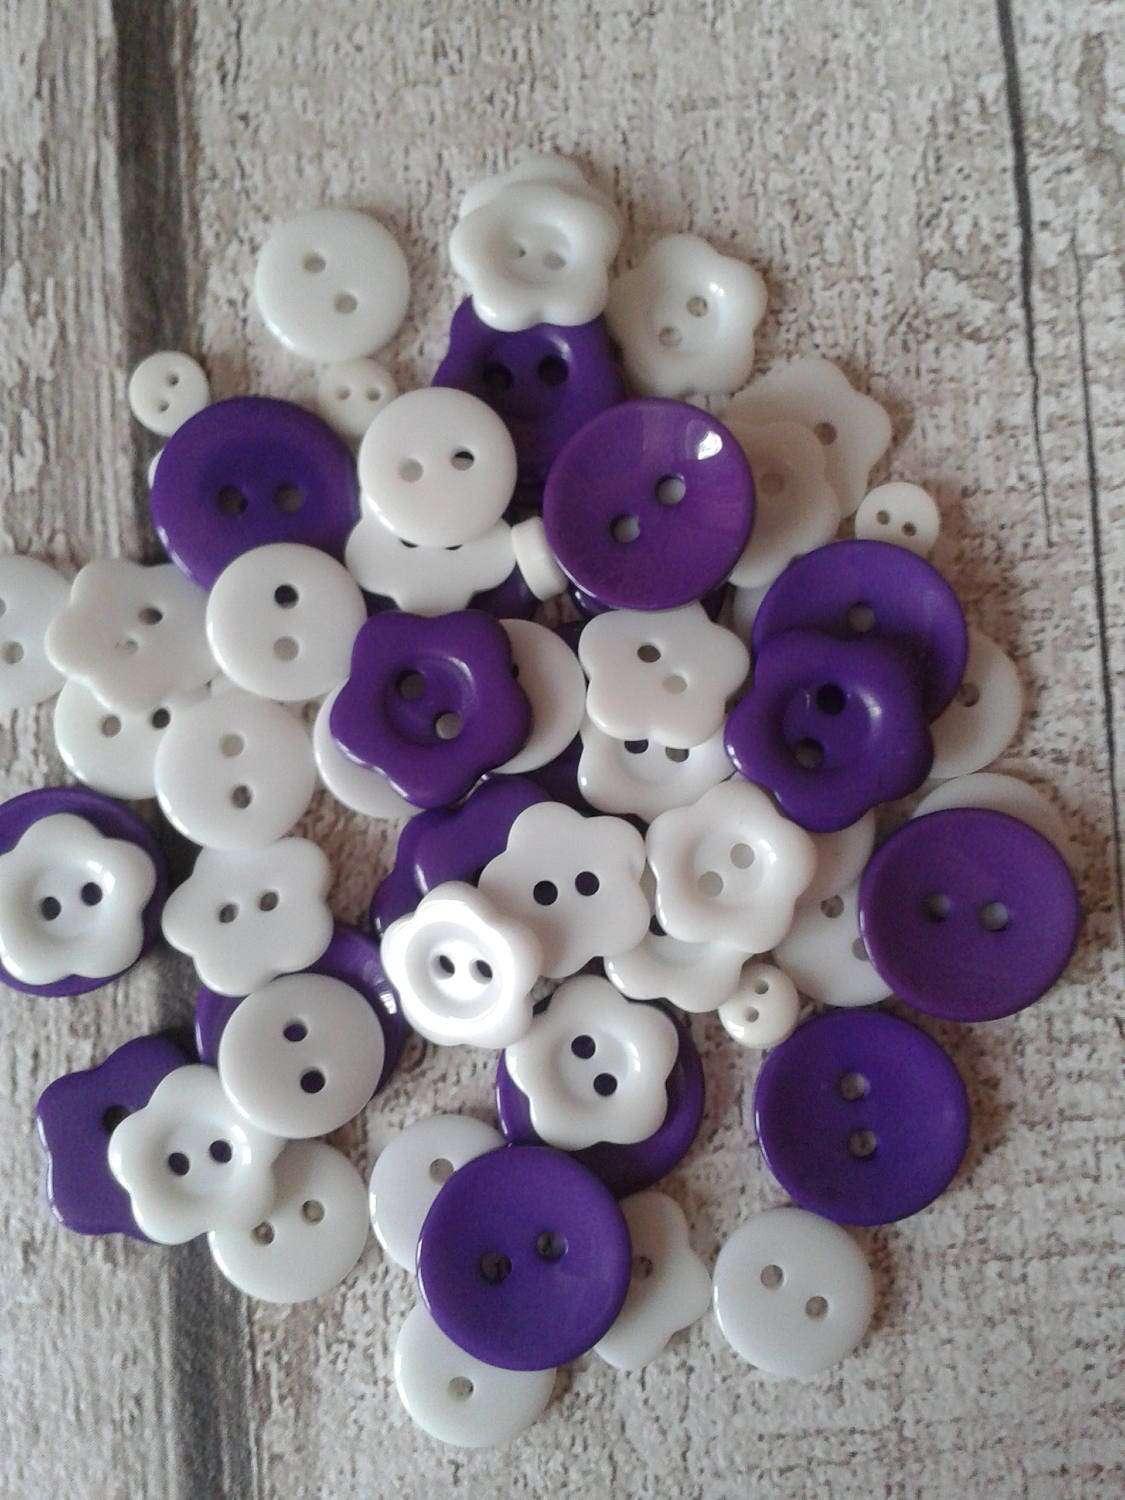 Bulk buttons for crafts -  2 36